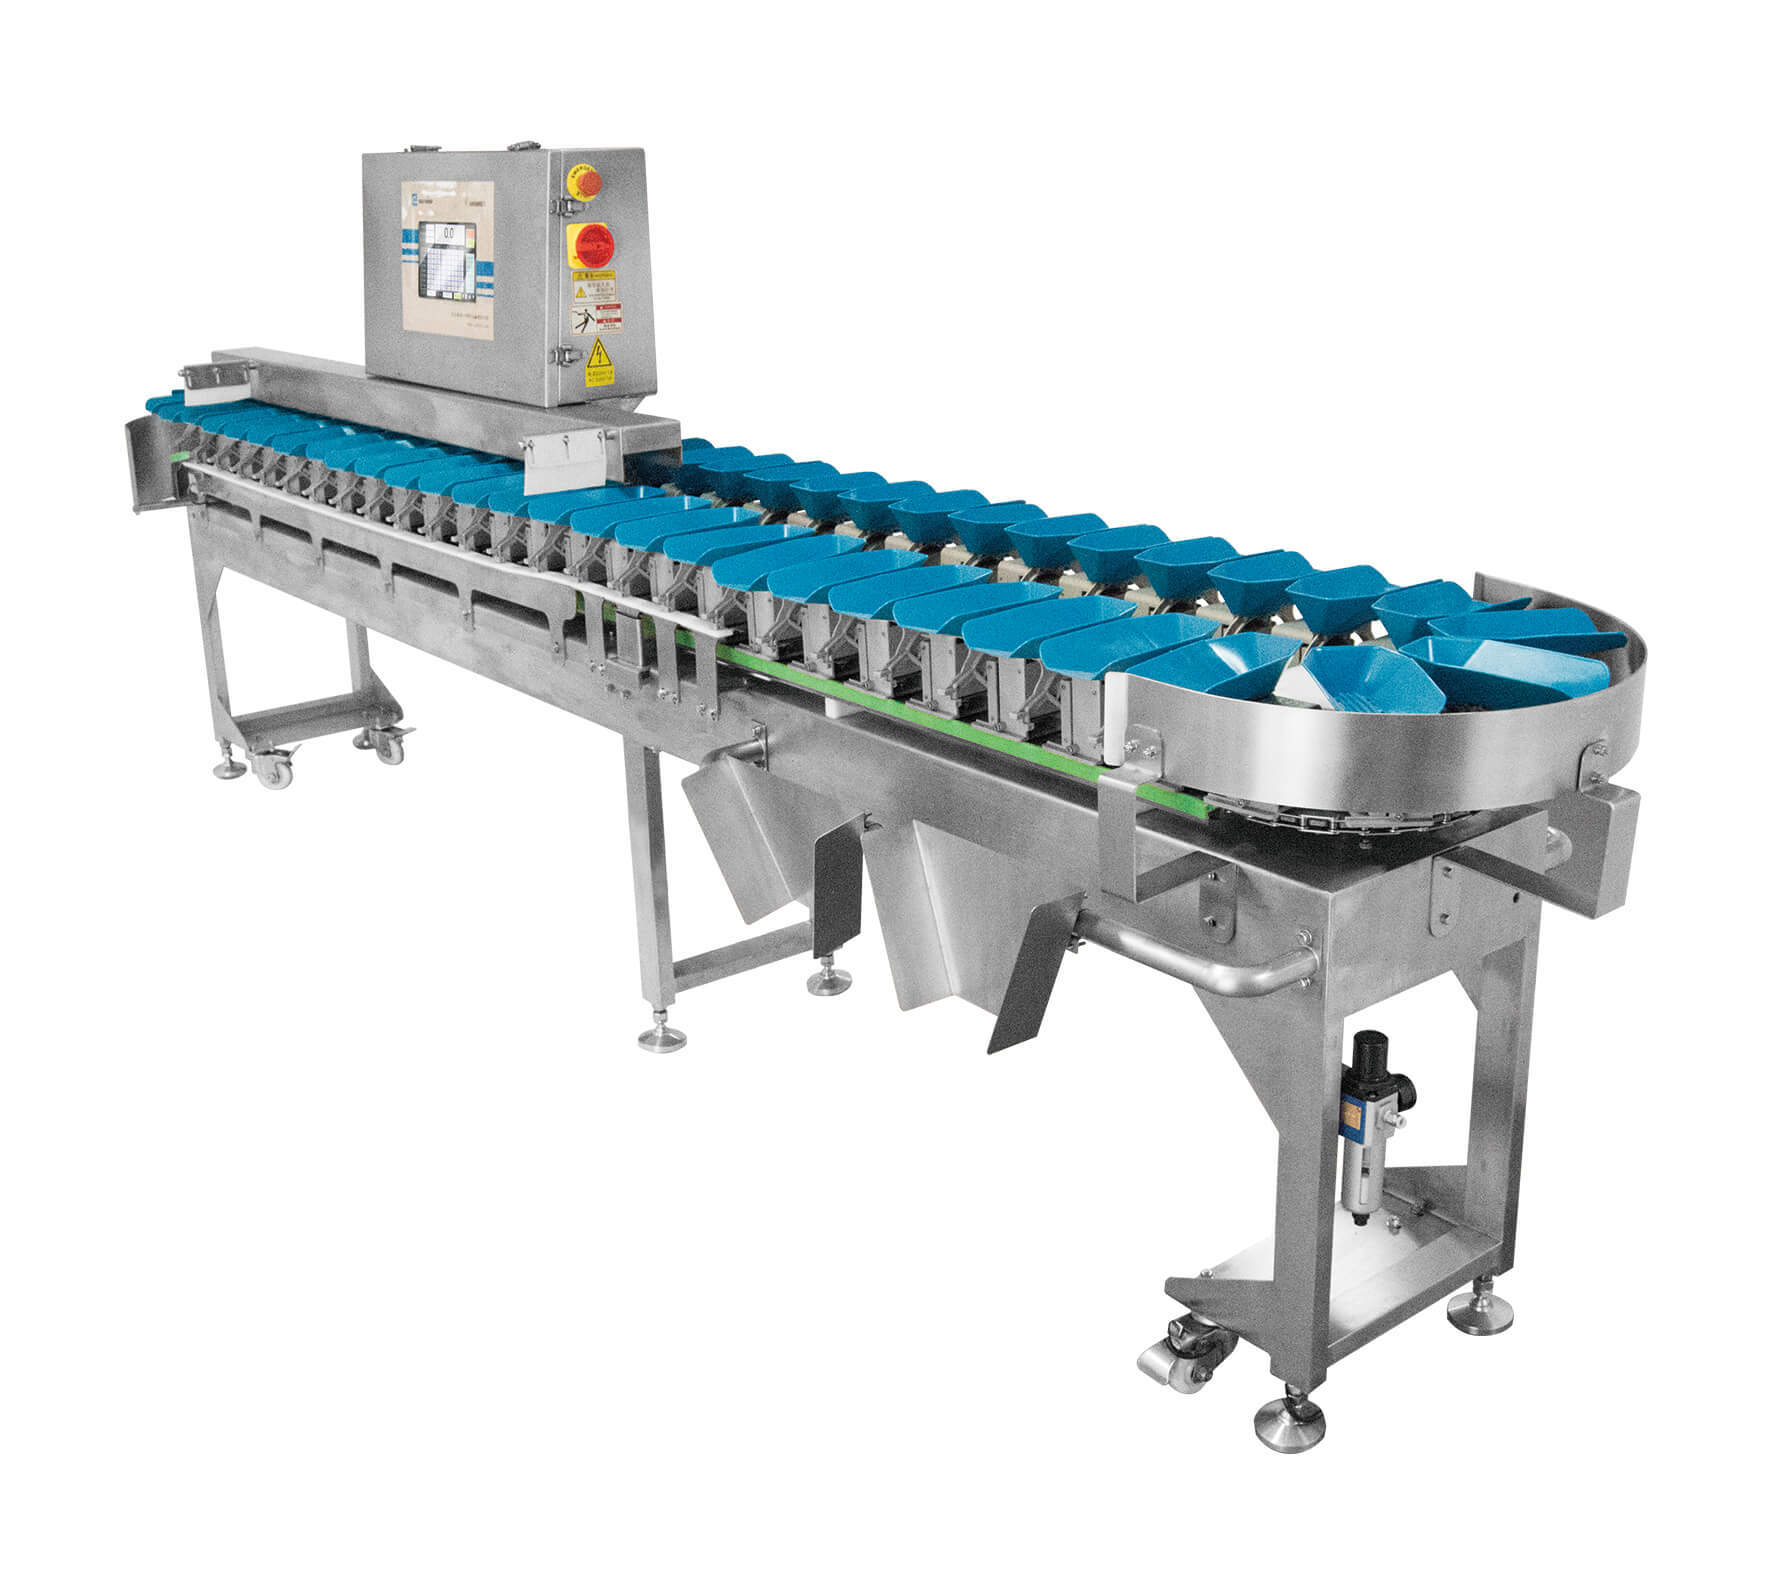 Rotating Tray weight sorting machine suitable for marine.